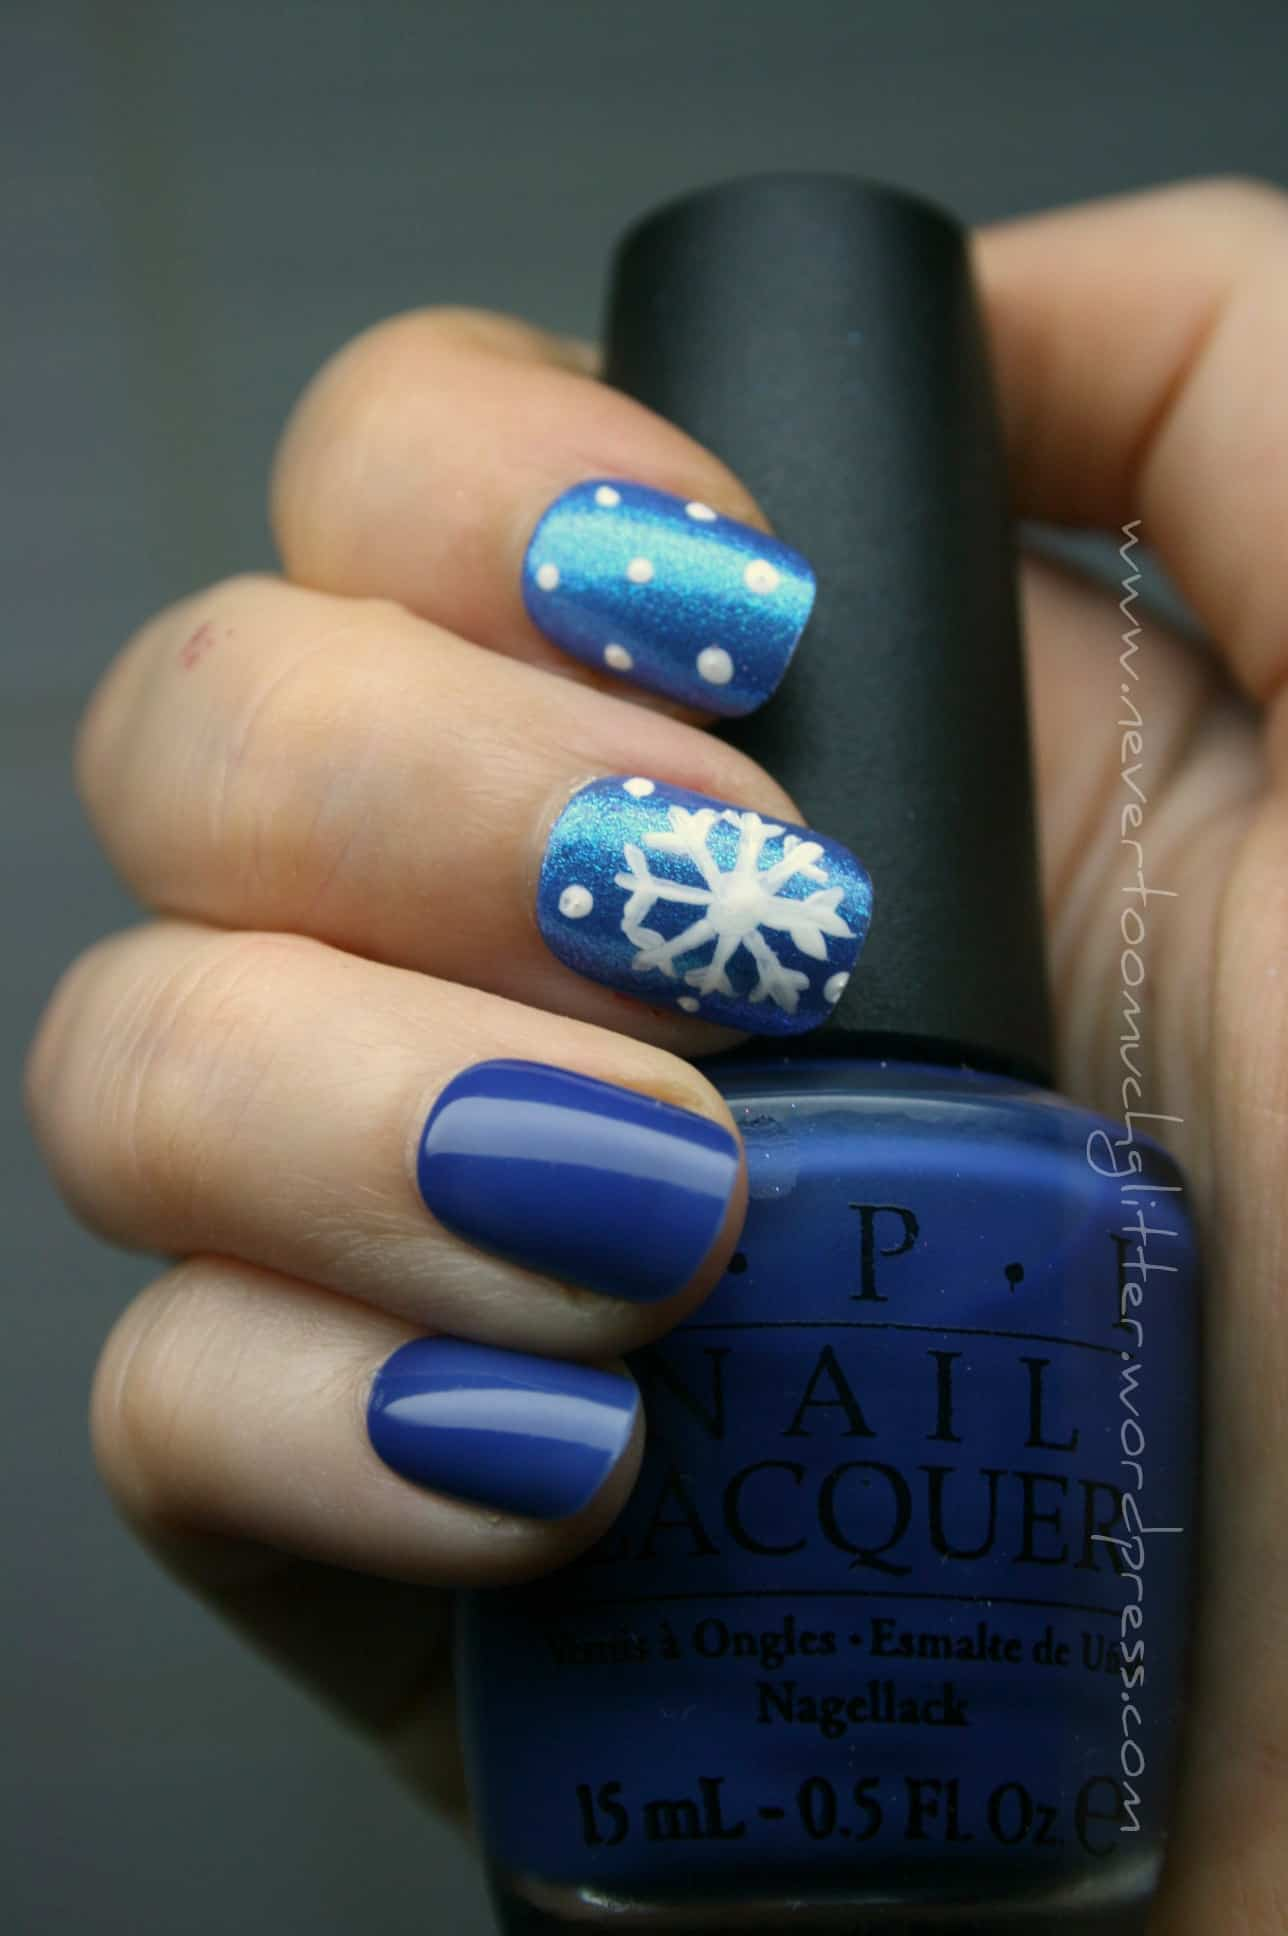 Deep blue with white dots and snowflakes